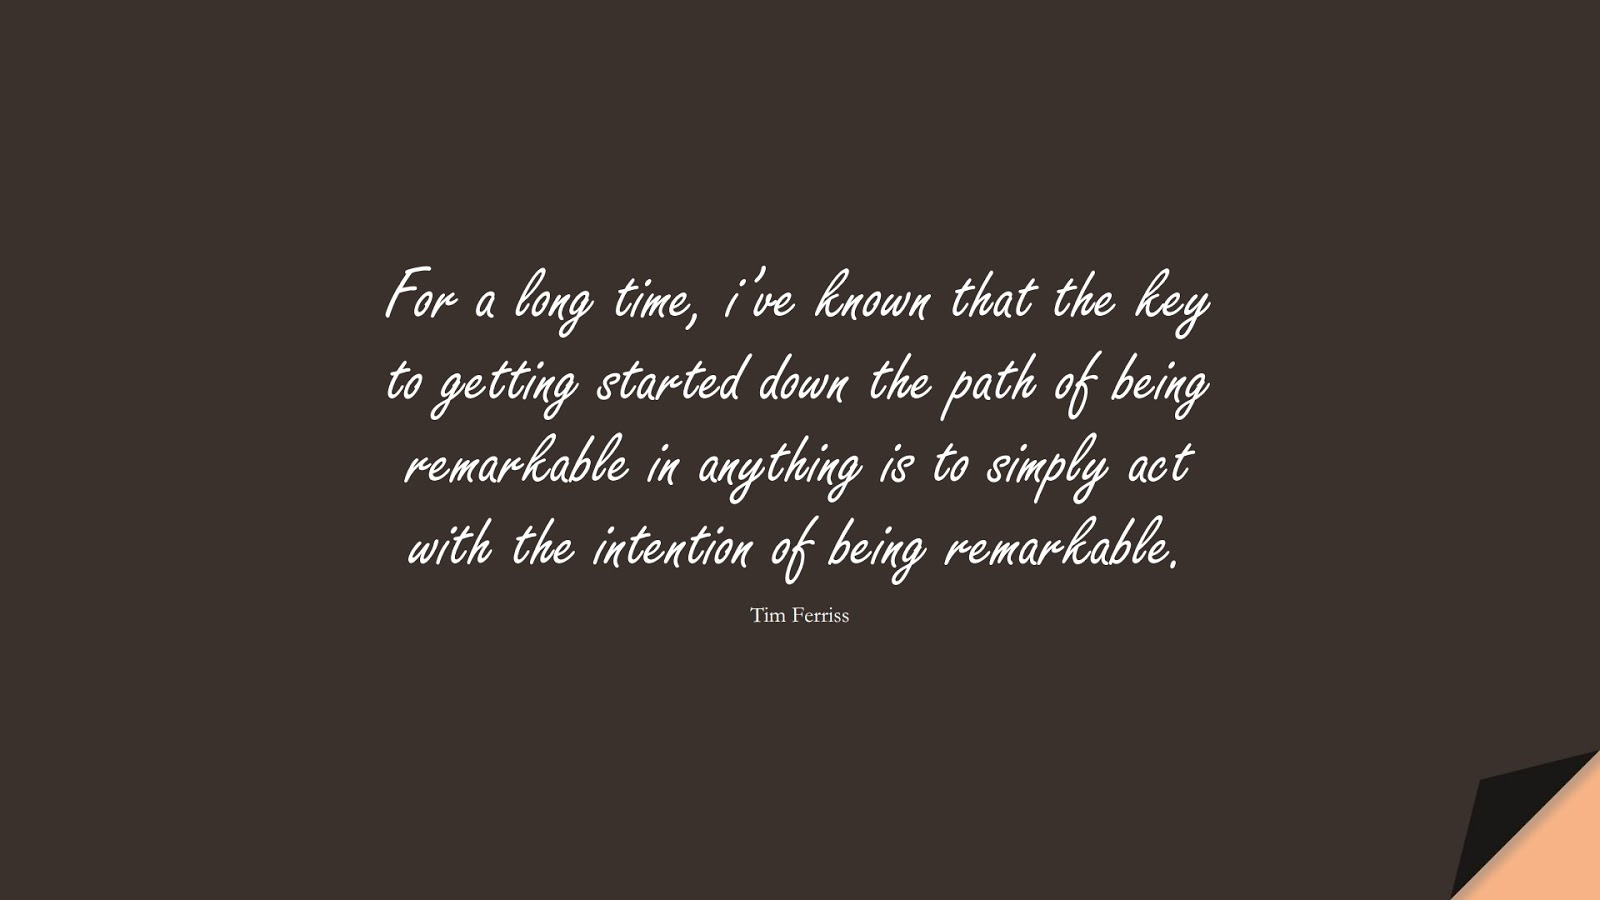 For a long time, i've known that the key to getting started down the path of being remarkable in anything is to simply act with the intention of being remarkable. (Tim Ferriss);  #TimFerrissQuotes